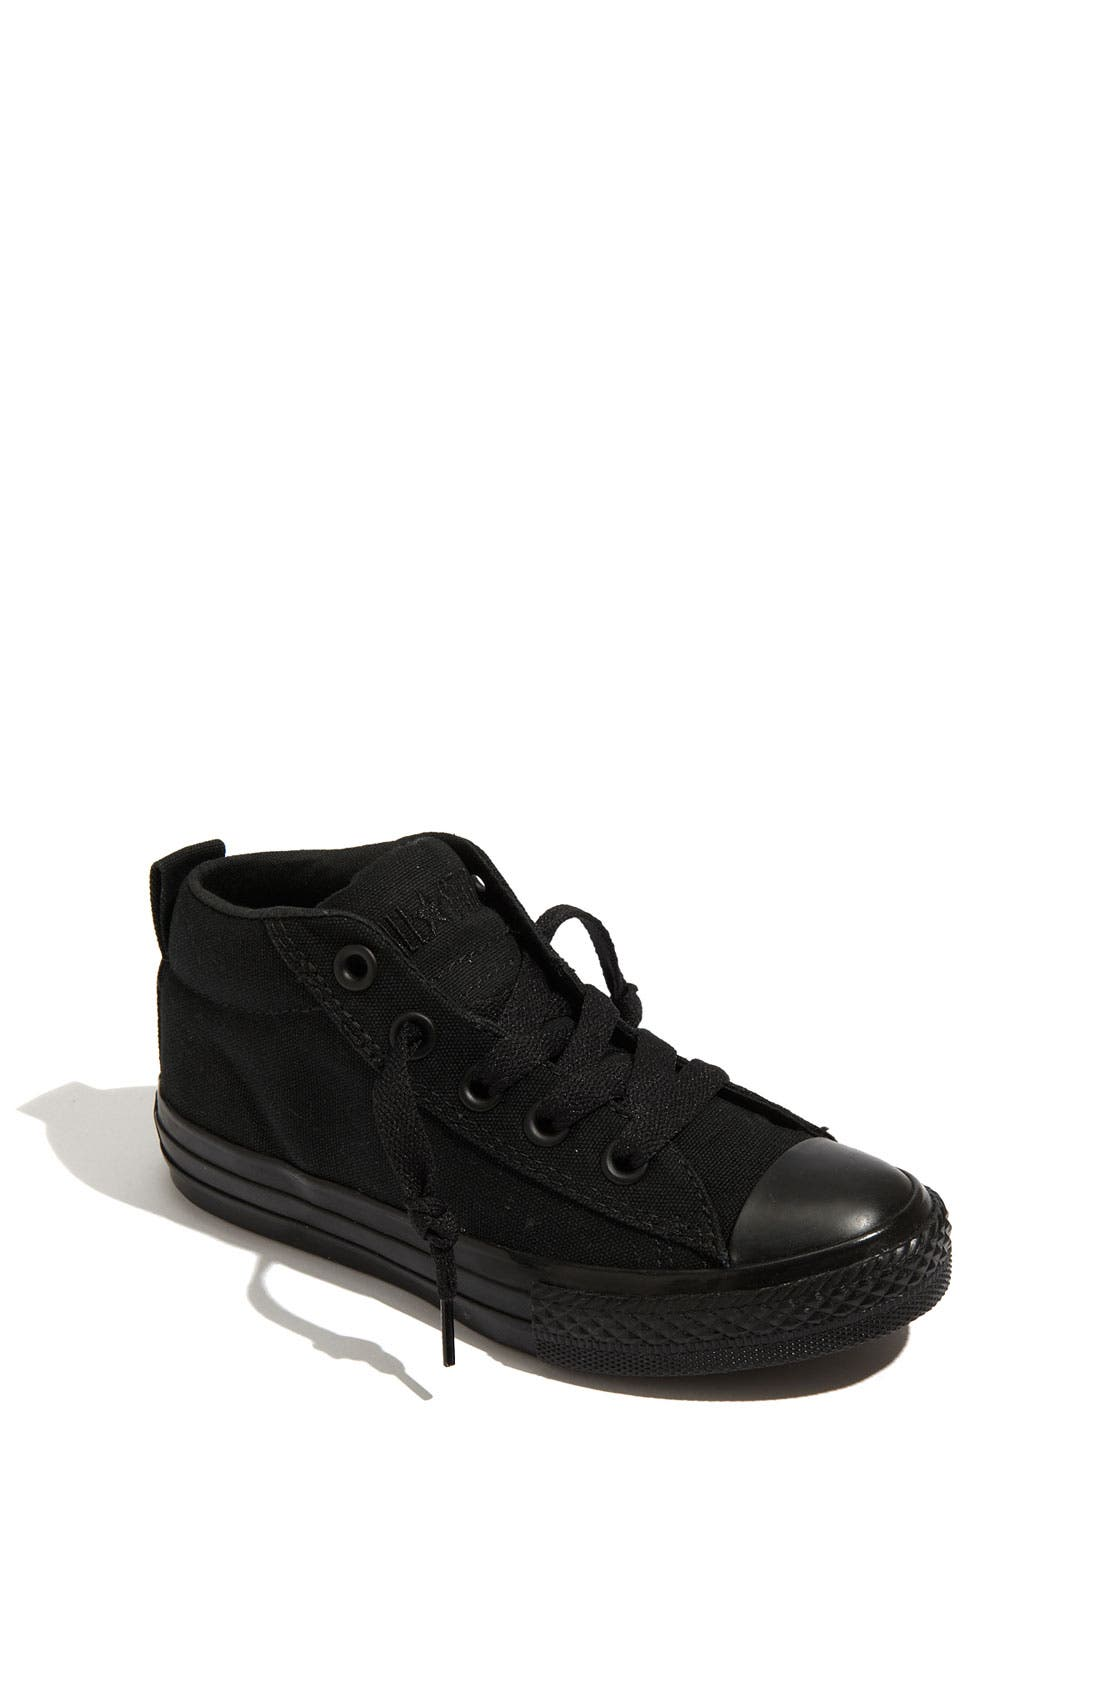 Chuck Taylor<sup>®</sup> 'Street Mid Cab' Slip-On Sneaker,                         Main,                         color, Black